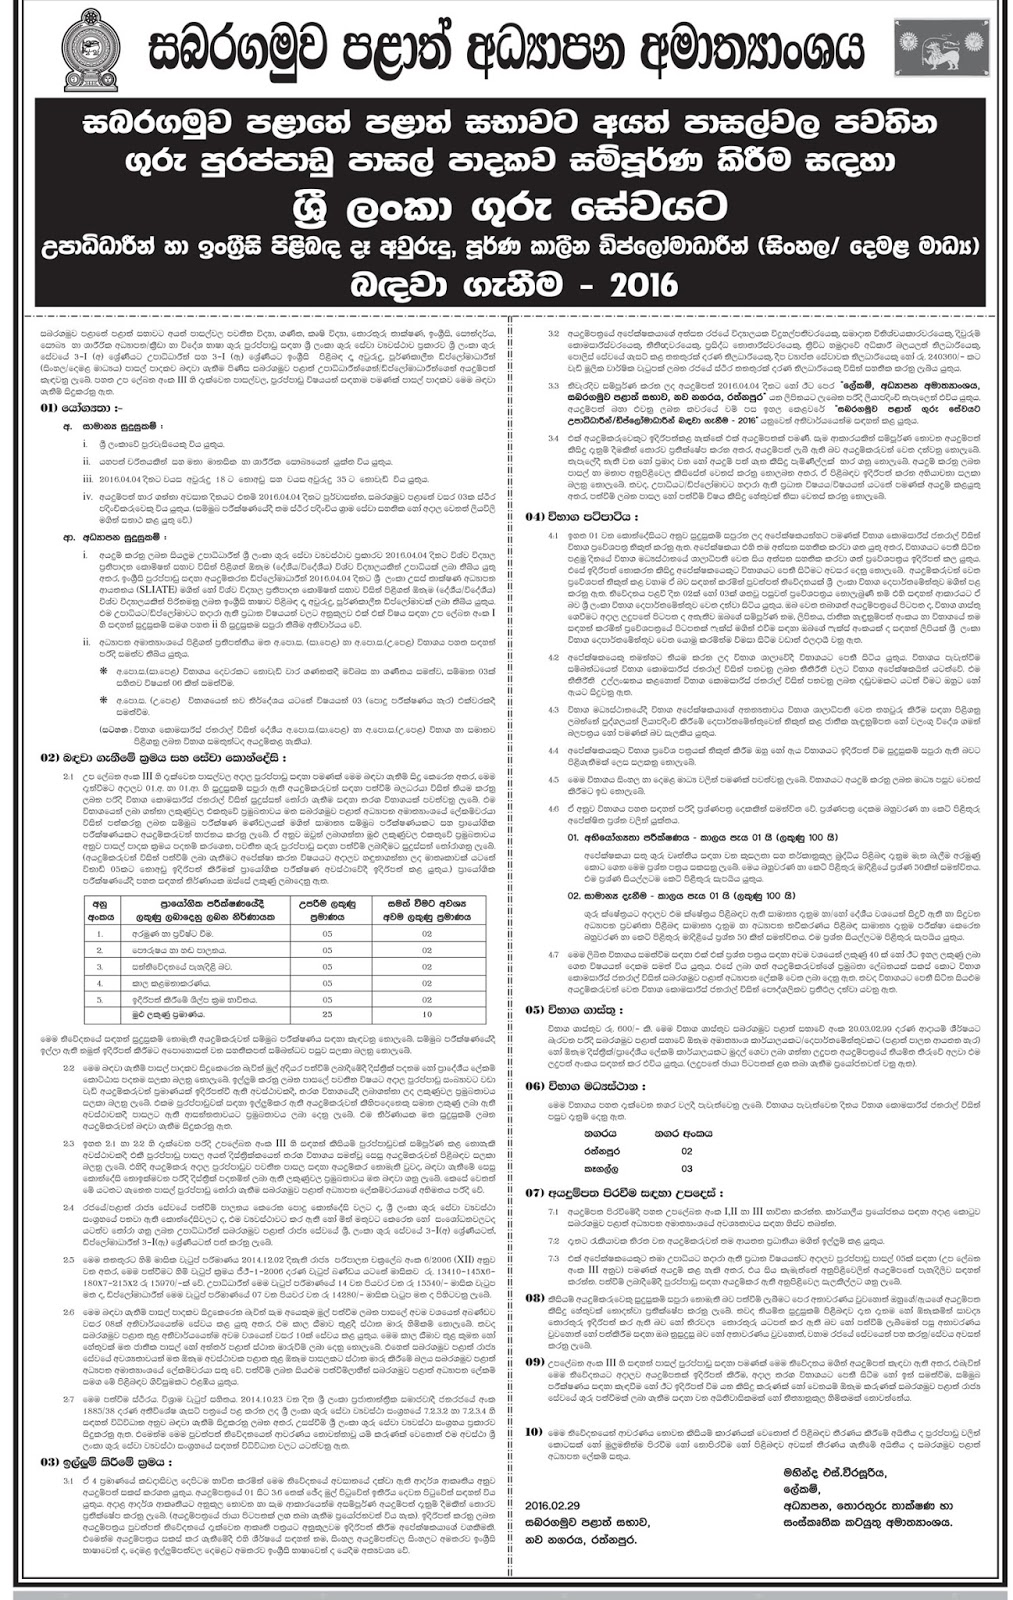 Vacancies - Collectibles in Sri Lanka Teachers graduates and in English on to complete based school teachers in the schools of Sabaragamuwa Province-year full-time diploma (Sinhala / Tamil) Recruitment - Provincial Ministry of Education